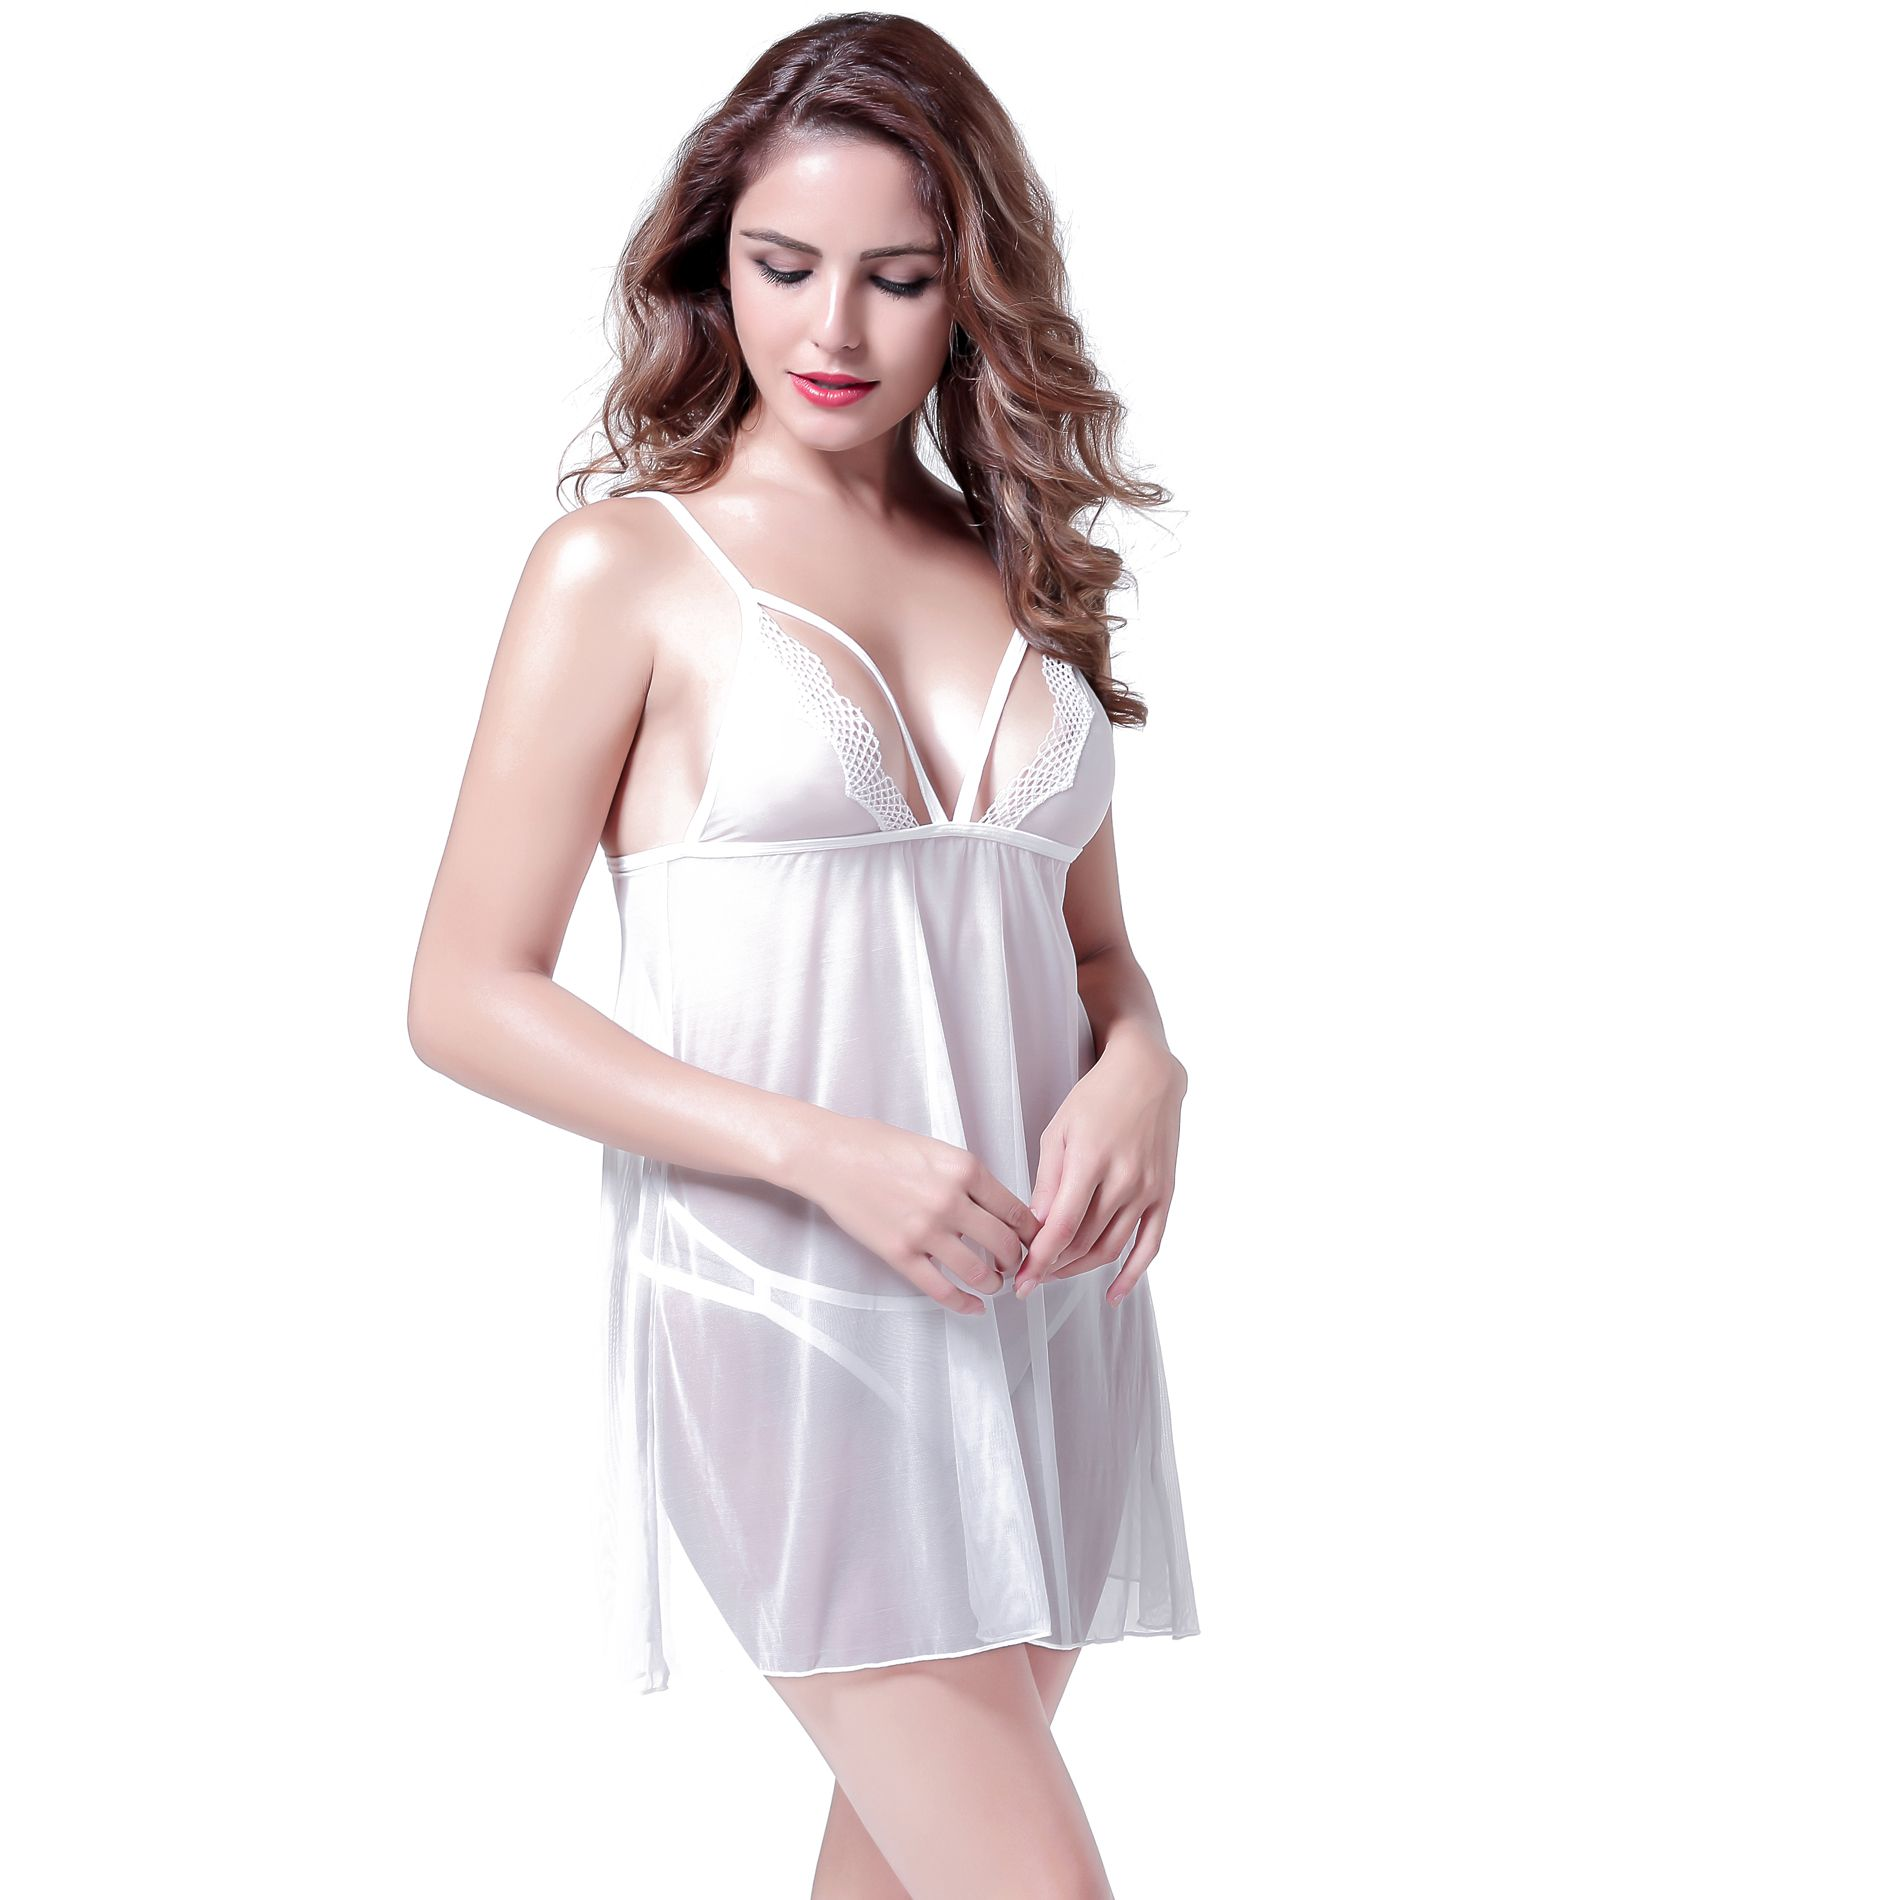 107905ea6 Anyou Sexy Lingerie Babydoll Dress V Neck Transparent Mesh Women Sleepwear  Nightgown White M - Walmart.com